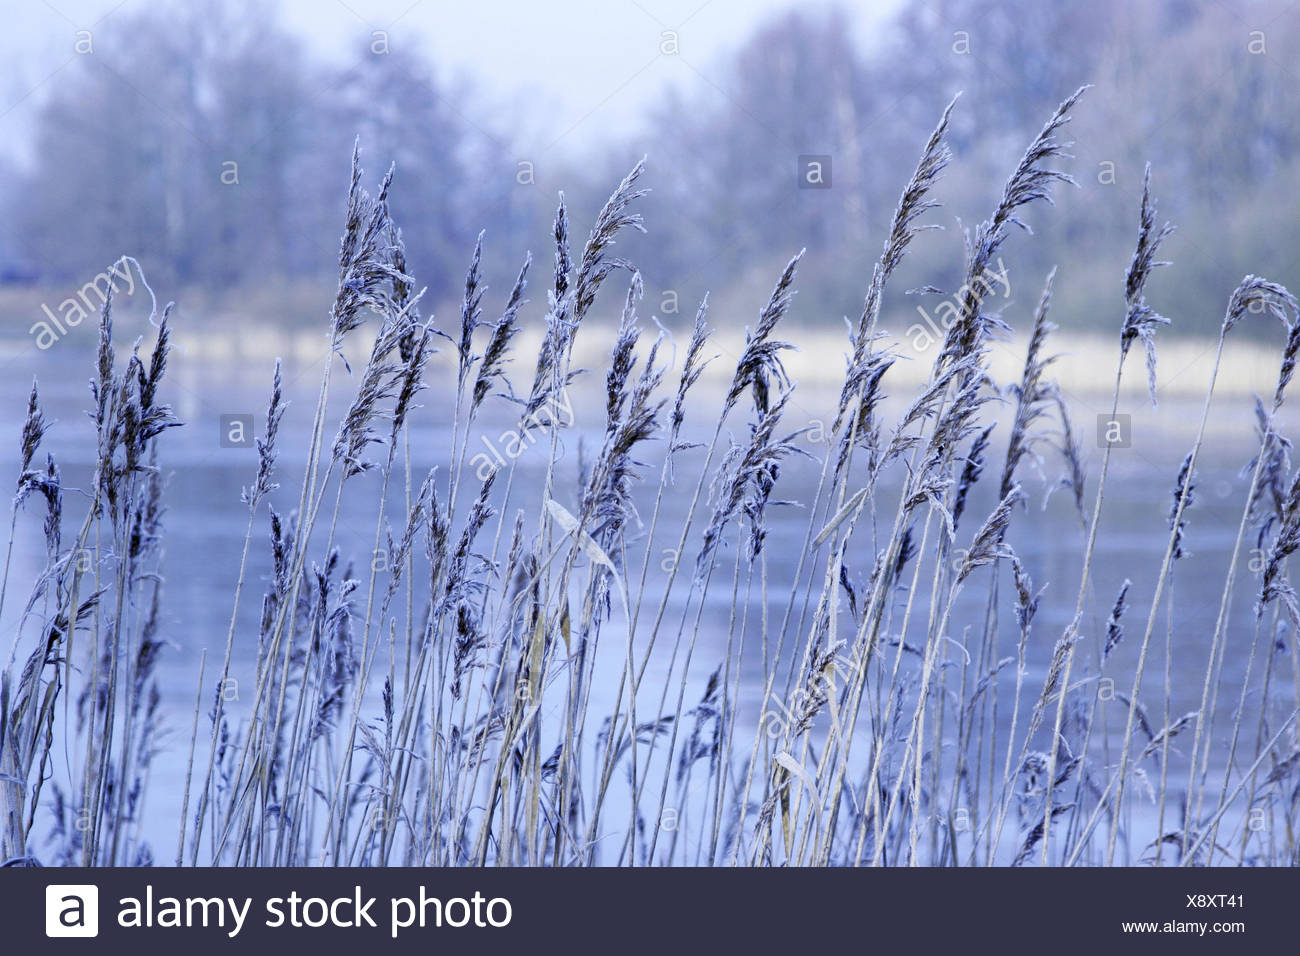 Reed grass, frost, detail, outside, grass, ice, hoarfrost, froze, lake, winter, shore, pond, grass, reed, cold, water, nature, plants, lakesides, pond shores, waters, icily, frosty, - Stock Image